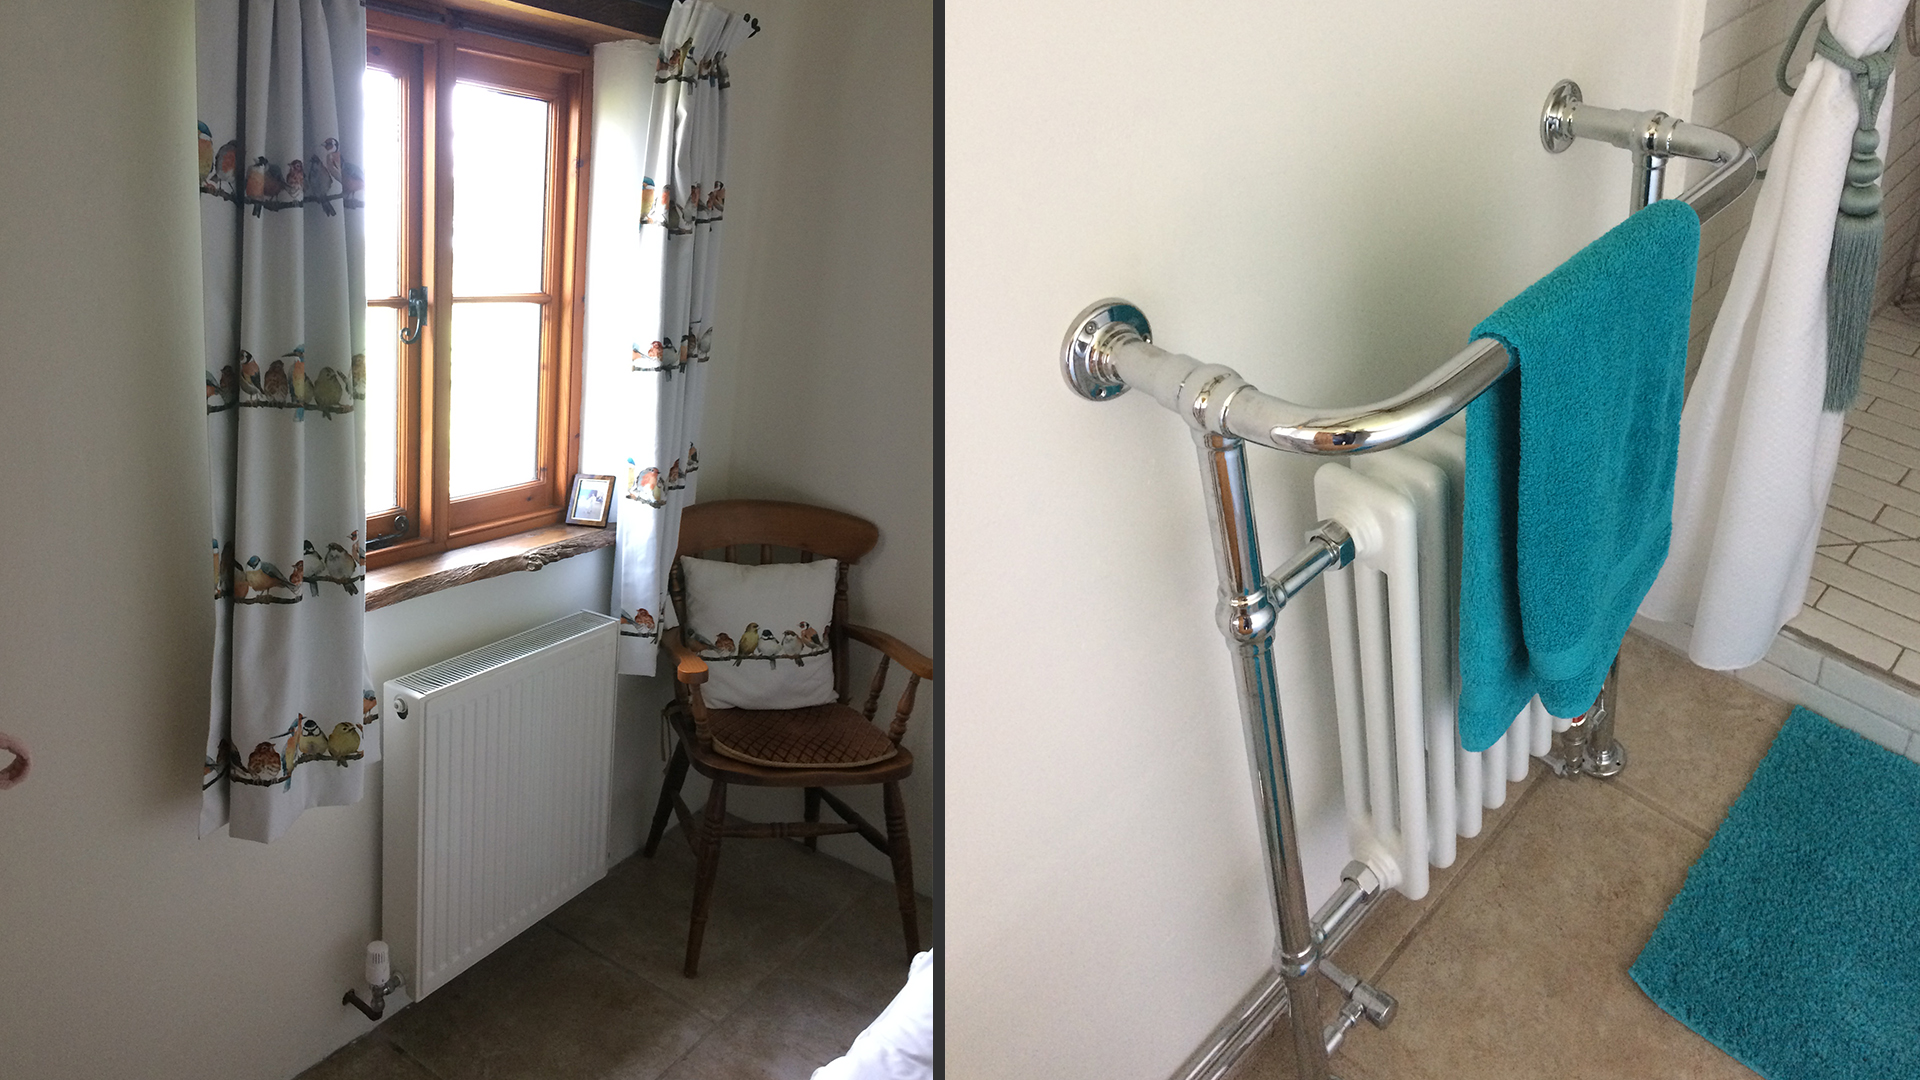 New heated towel rail + radiator upgrade installed by Abode